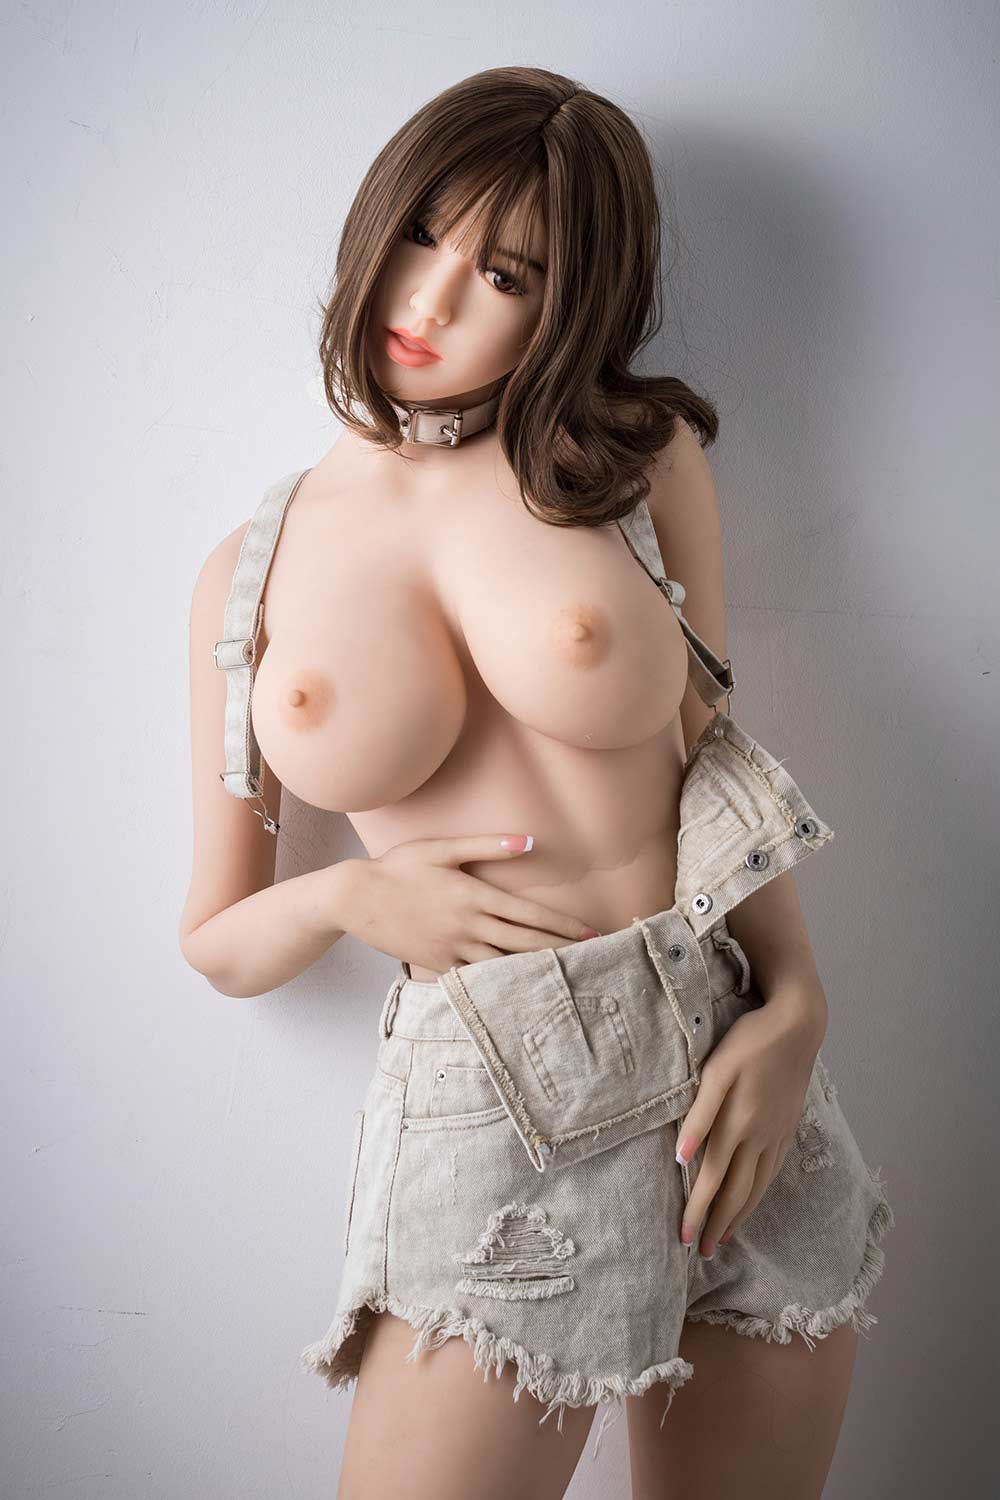 Sex doll with hands in pants